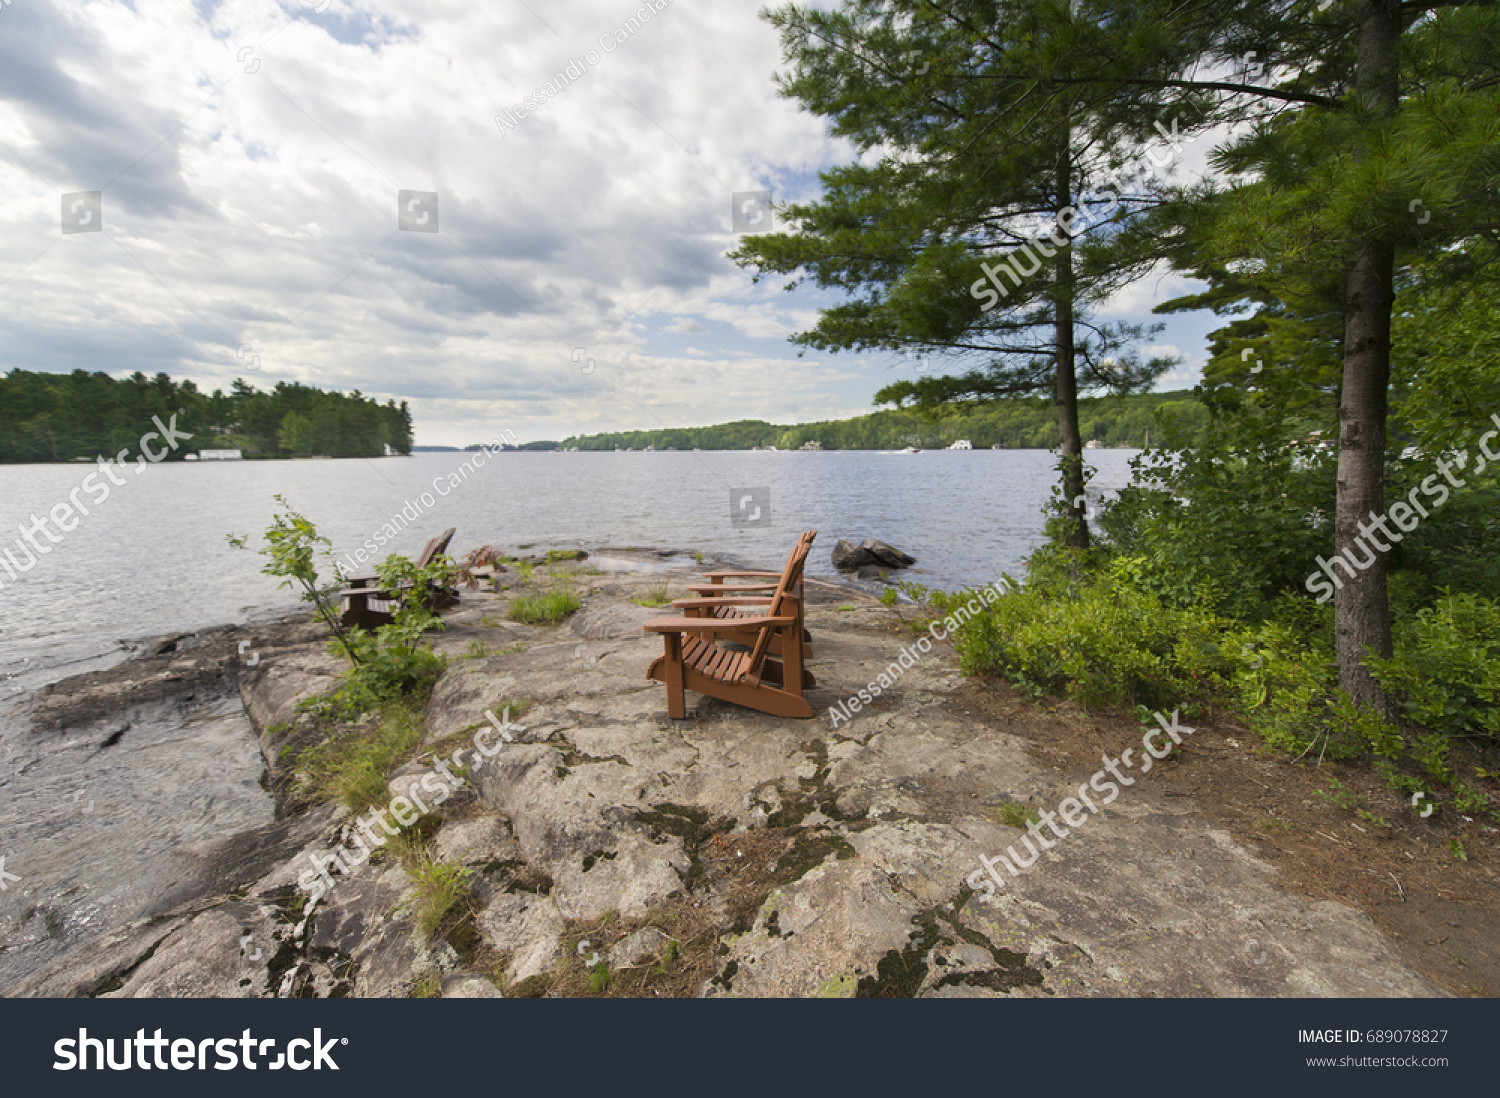 Muskoka Chairs On A Rock Formation Facing A Calm Lake. Across The Lake  Thereu0027s A